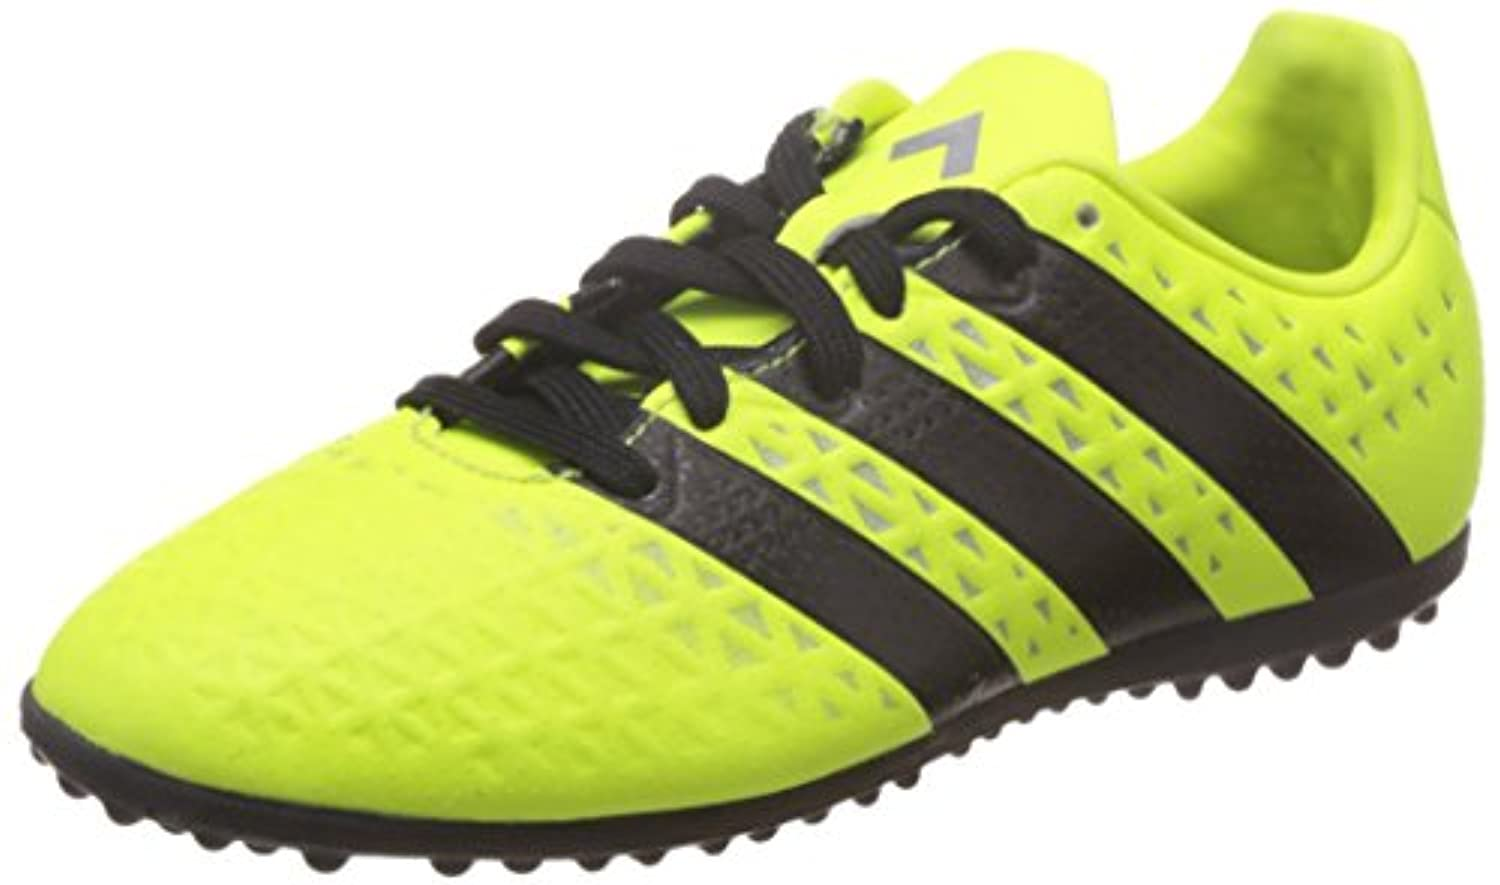 adidas ACE 16.3 TF J - Football boots for Boys, 35 1/2, Yellow